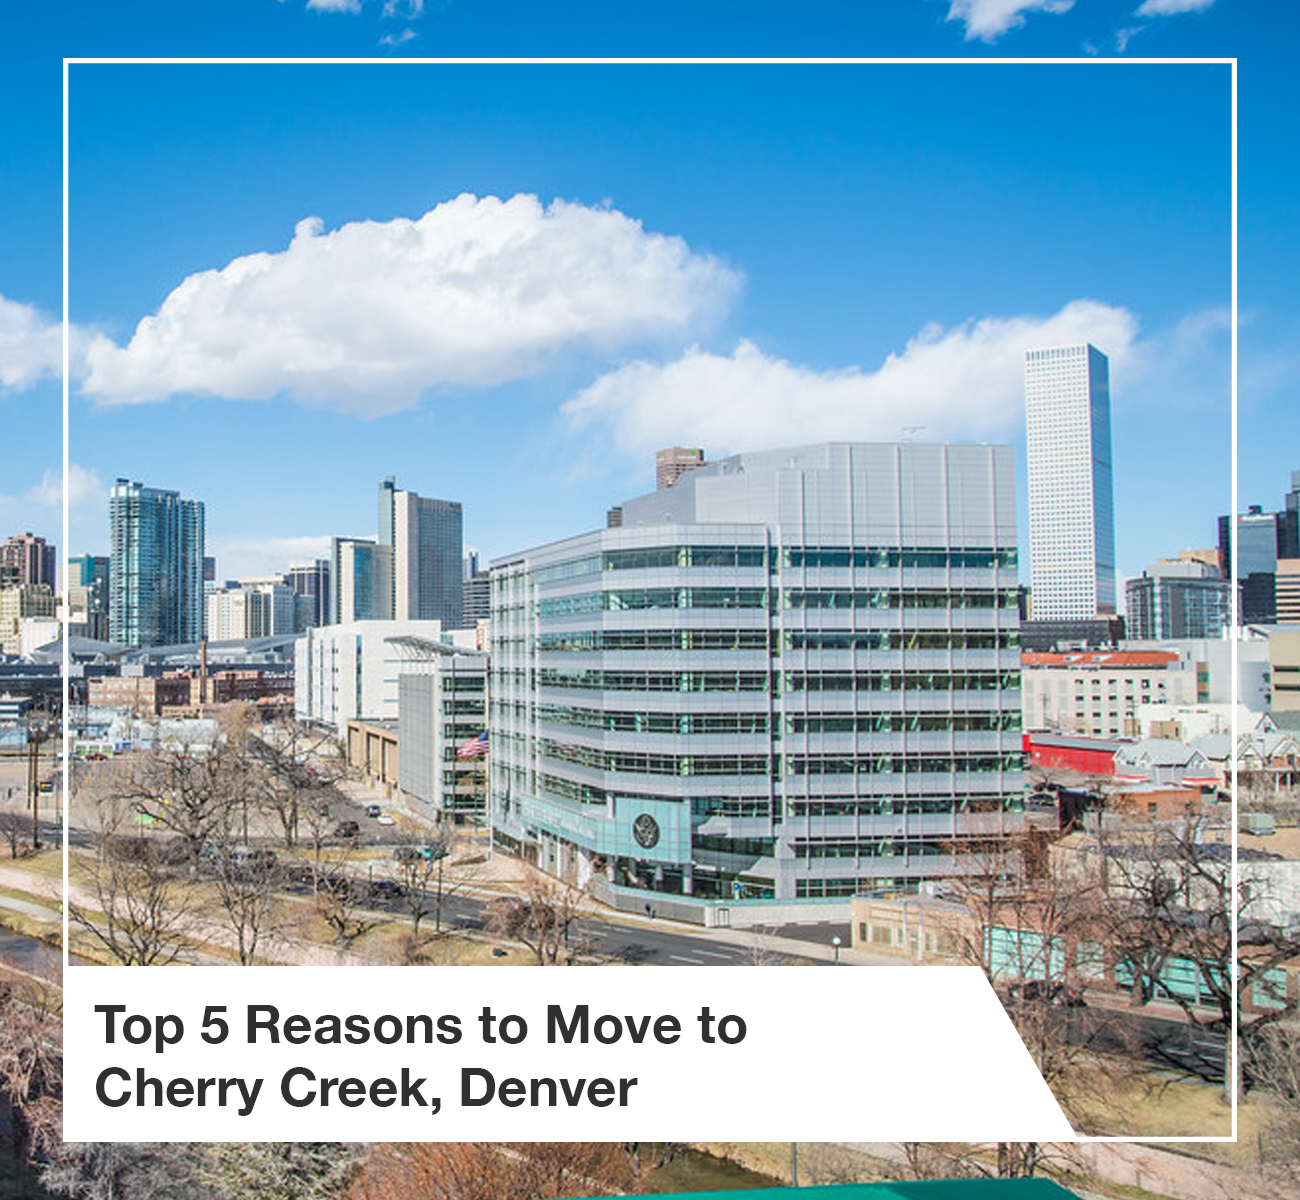 Top 5 Reasons to Move to Cherry Creek Denver